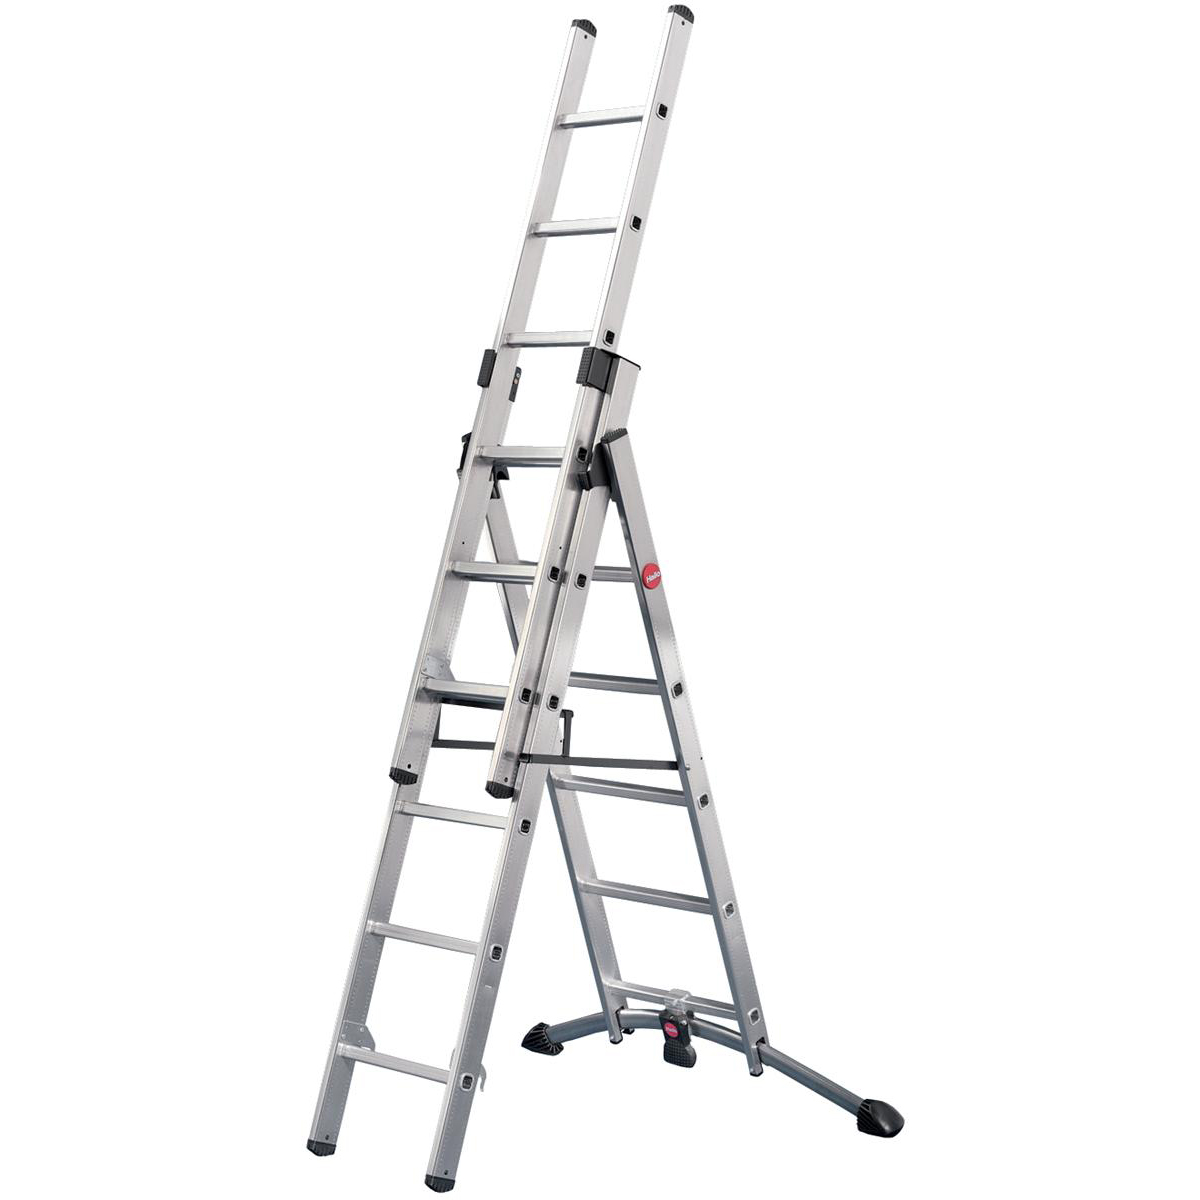 Steps Combi Ladder 3 Section Capacity 150kg Rungs 2x6 and 1x5 for H4.8m 15.5kg Aluminium